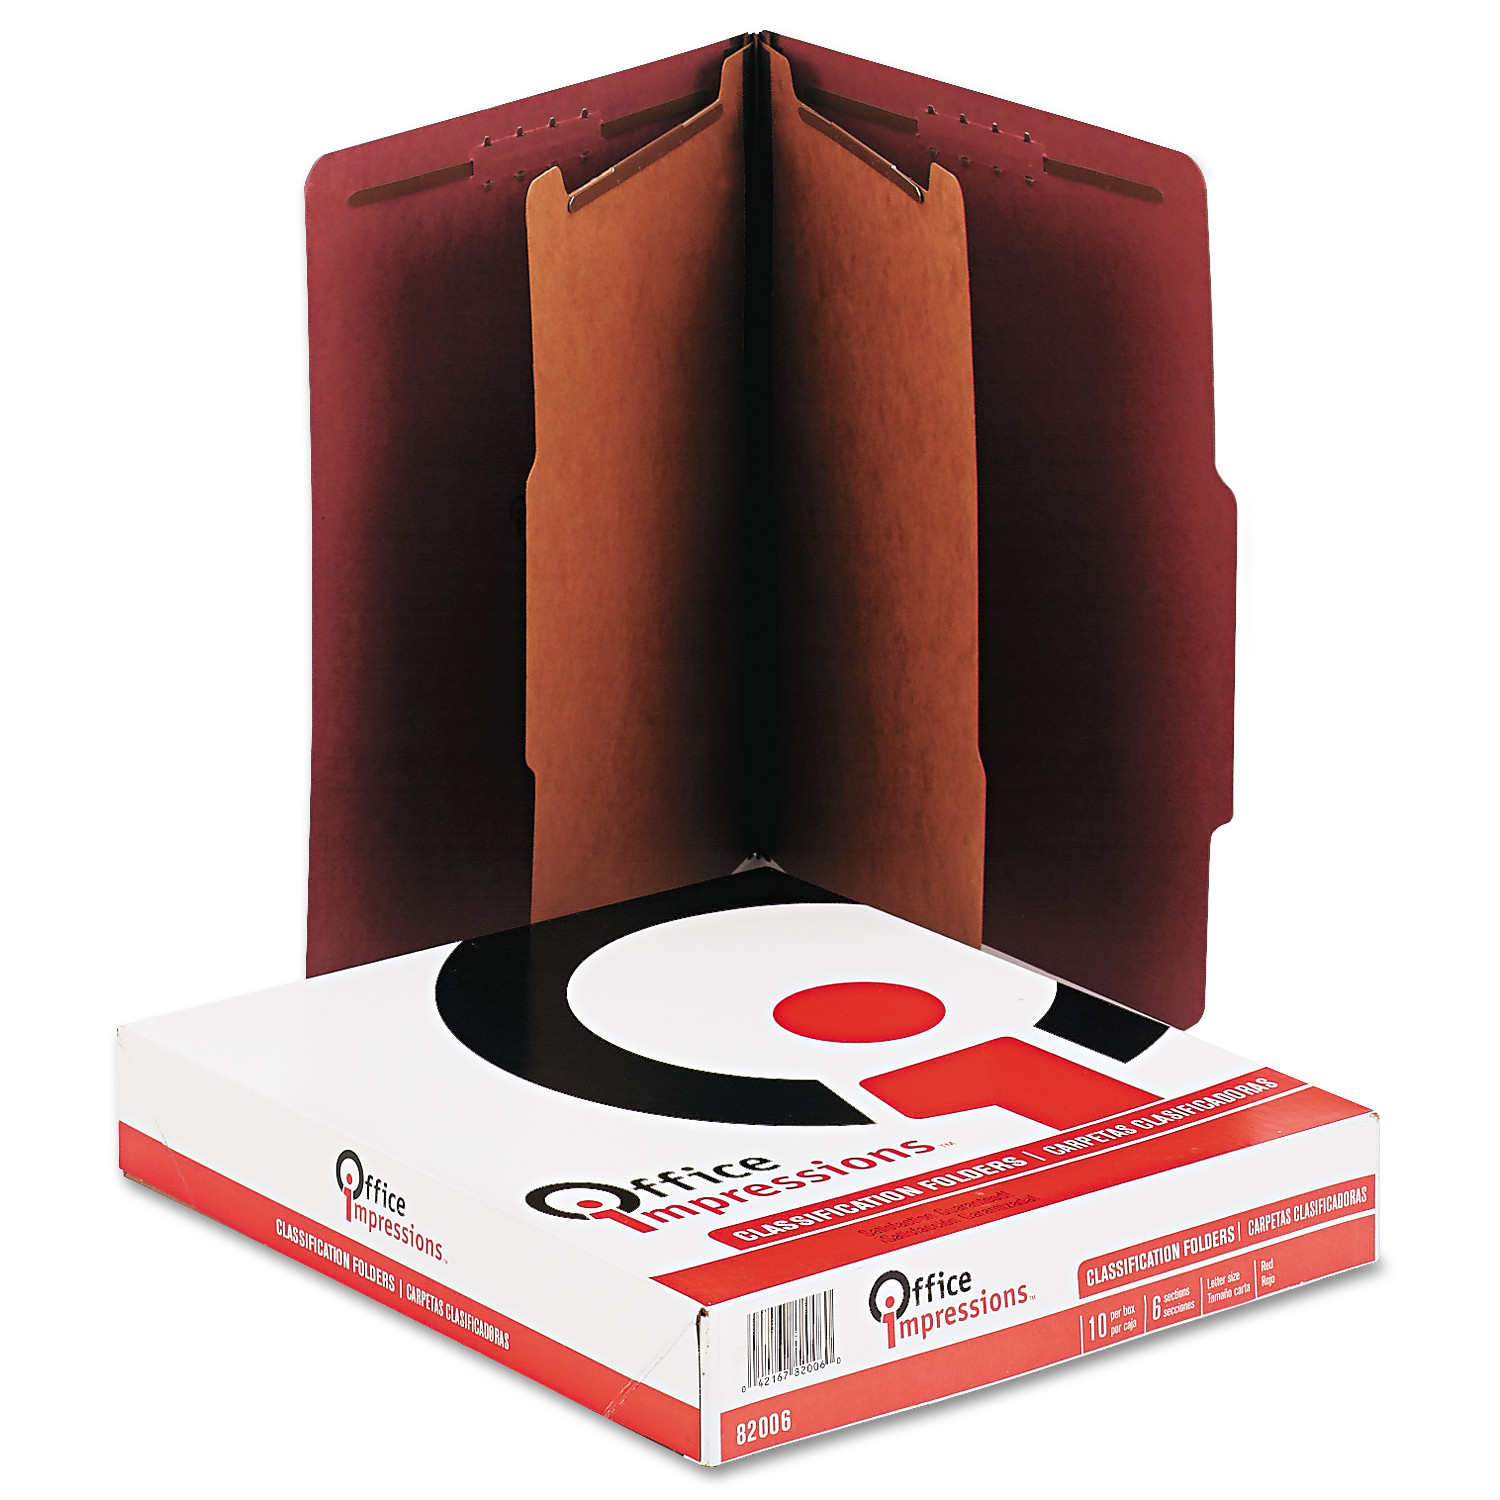 Office Impressions Pressboard Classification Folder, Letter, Six-Section, Red, 10/Box -OFF82006